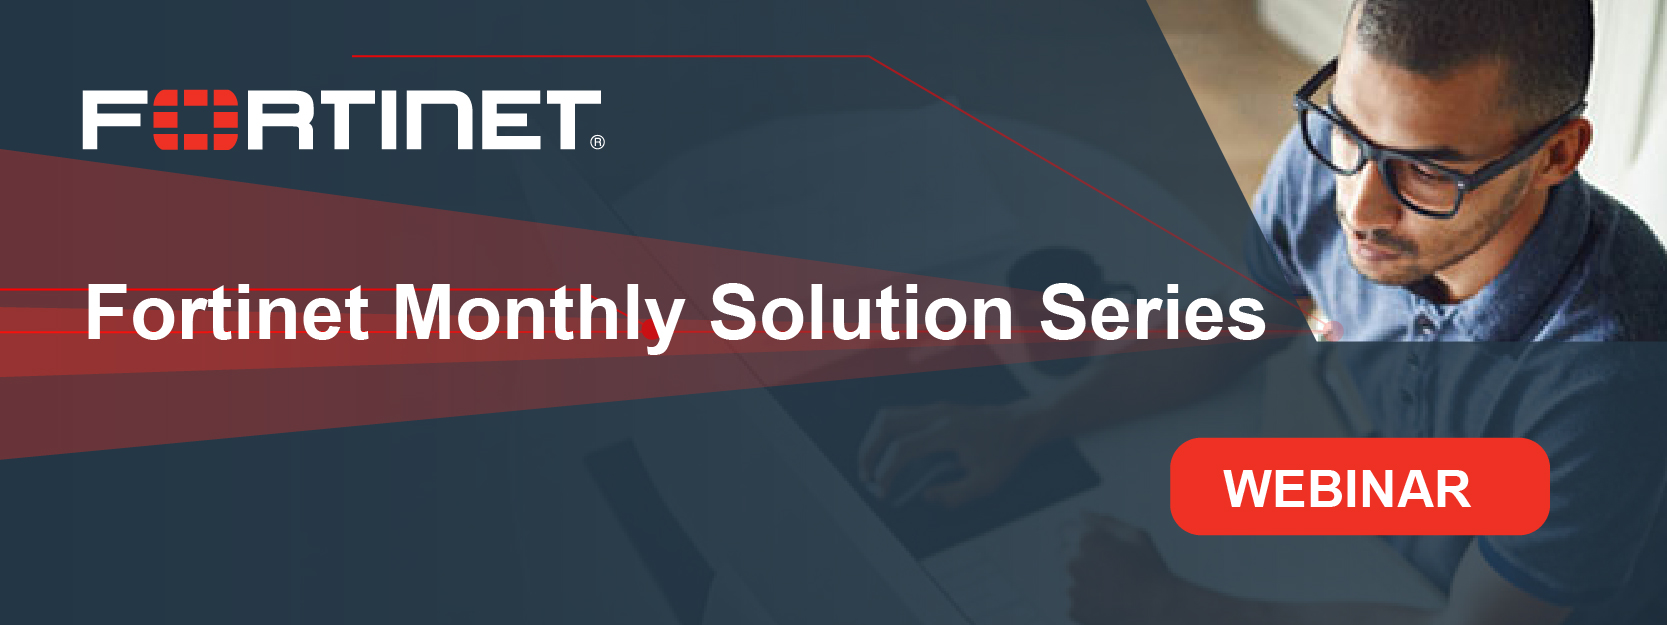 Fortinet Monthly Solution Series Banners_August CTA.JPG